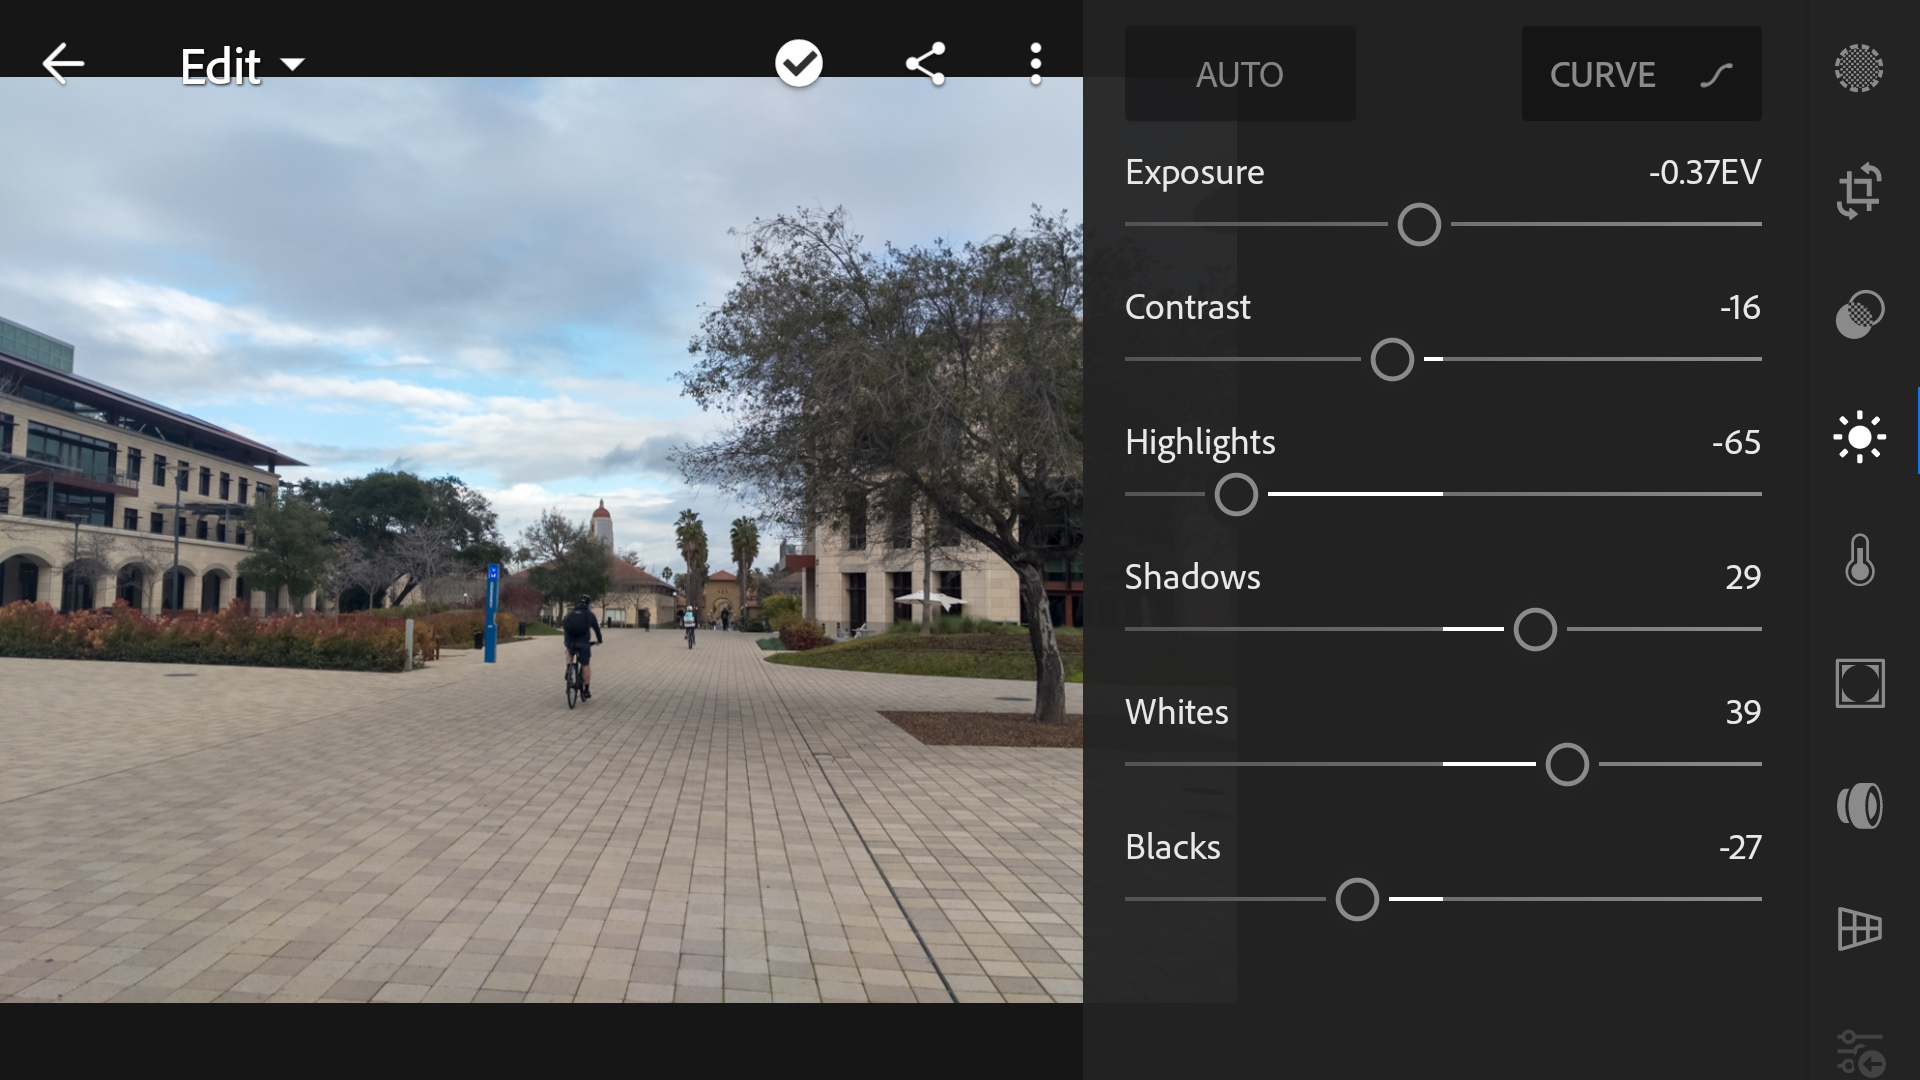 Lightroom mobile offers a wide-variety of editing tools, starting with these simple slider-based adjustments